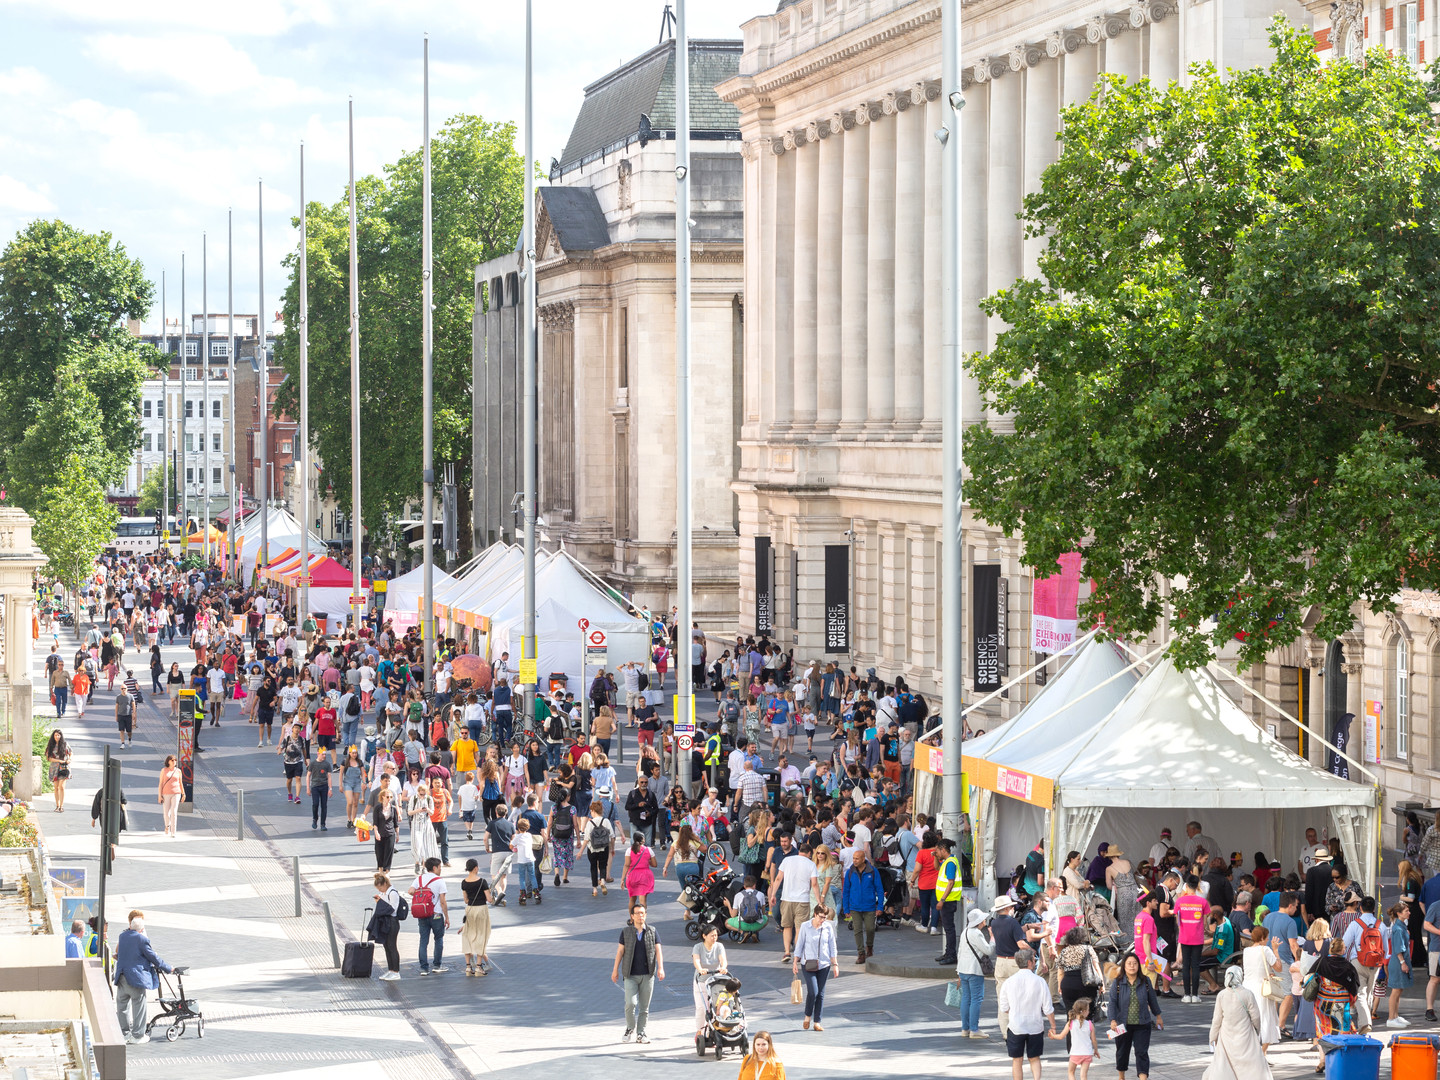 EXHIBITION ROAD STREET FESTIVAL